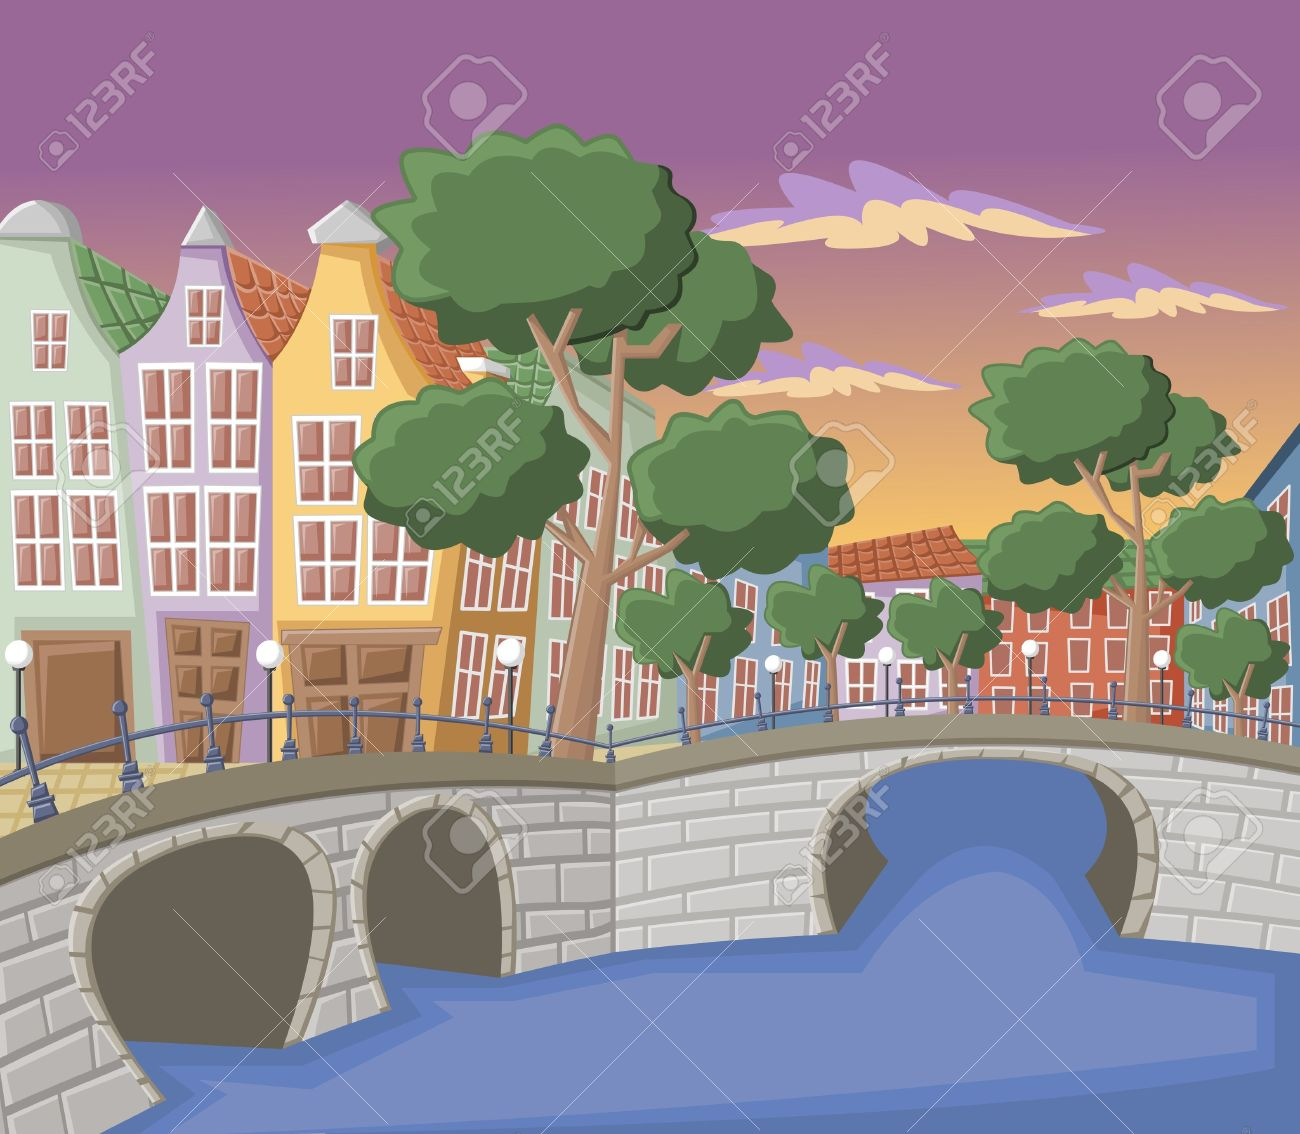 Canal with water clipart.